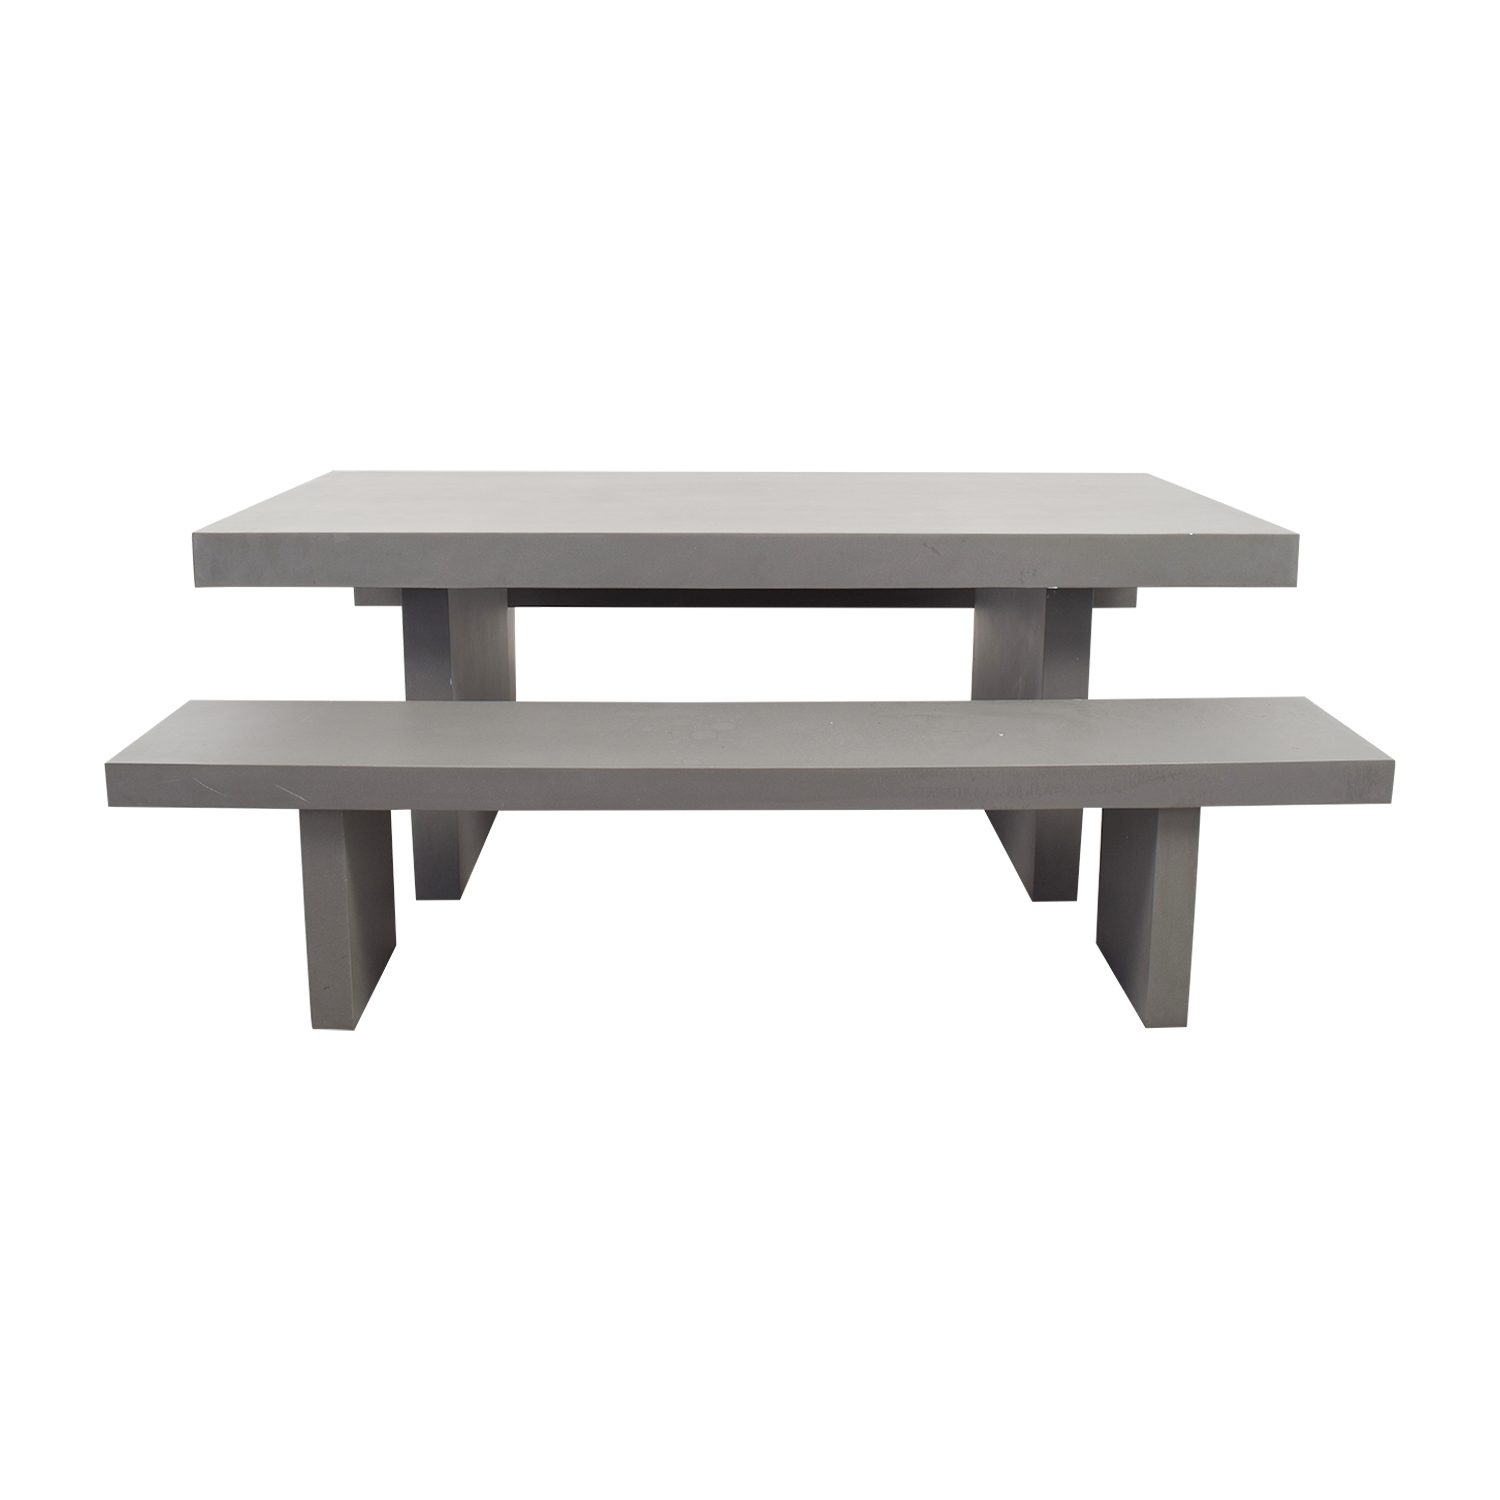 off west elm quarry gray rectangle dining table and benches second hand accent tables best home decor items copper accessories lamps that use batteries placemats small black